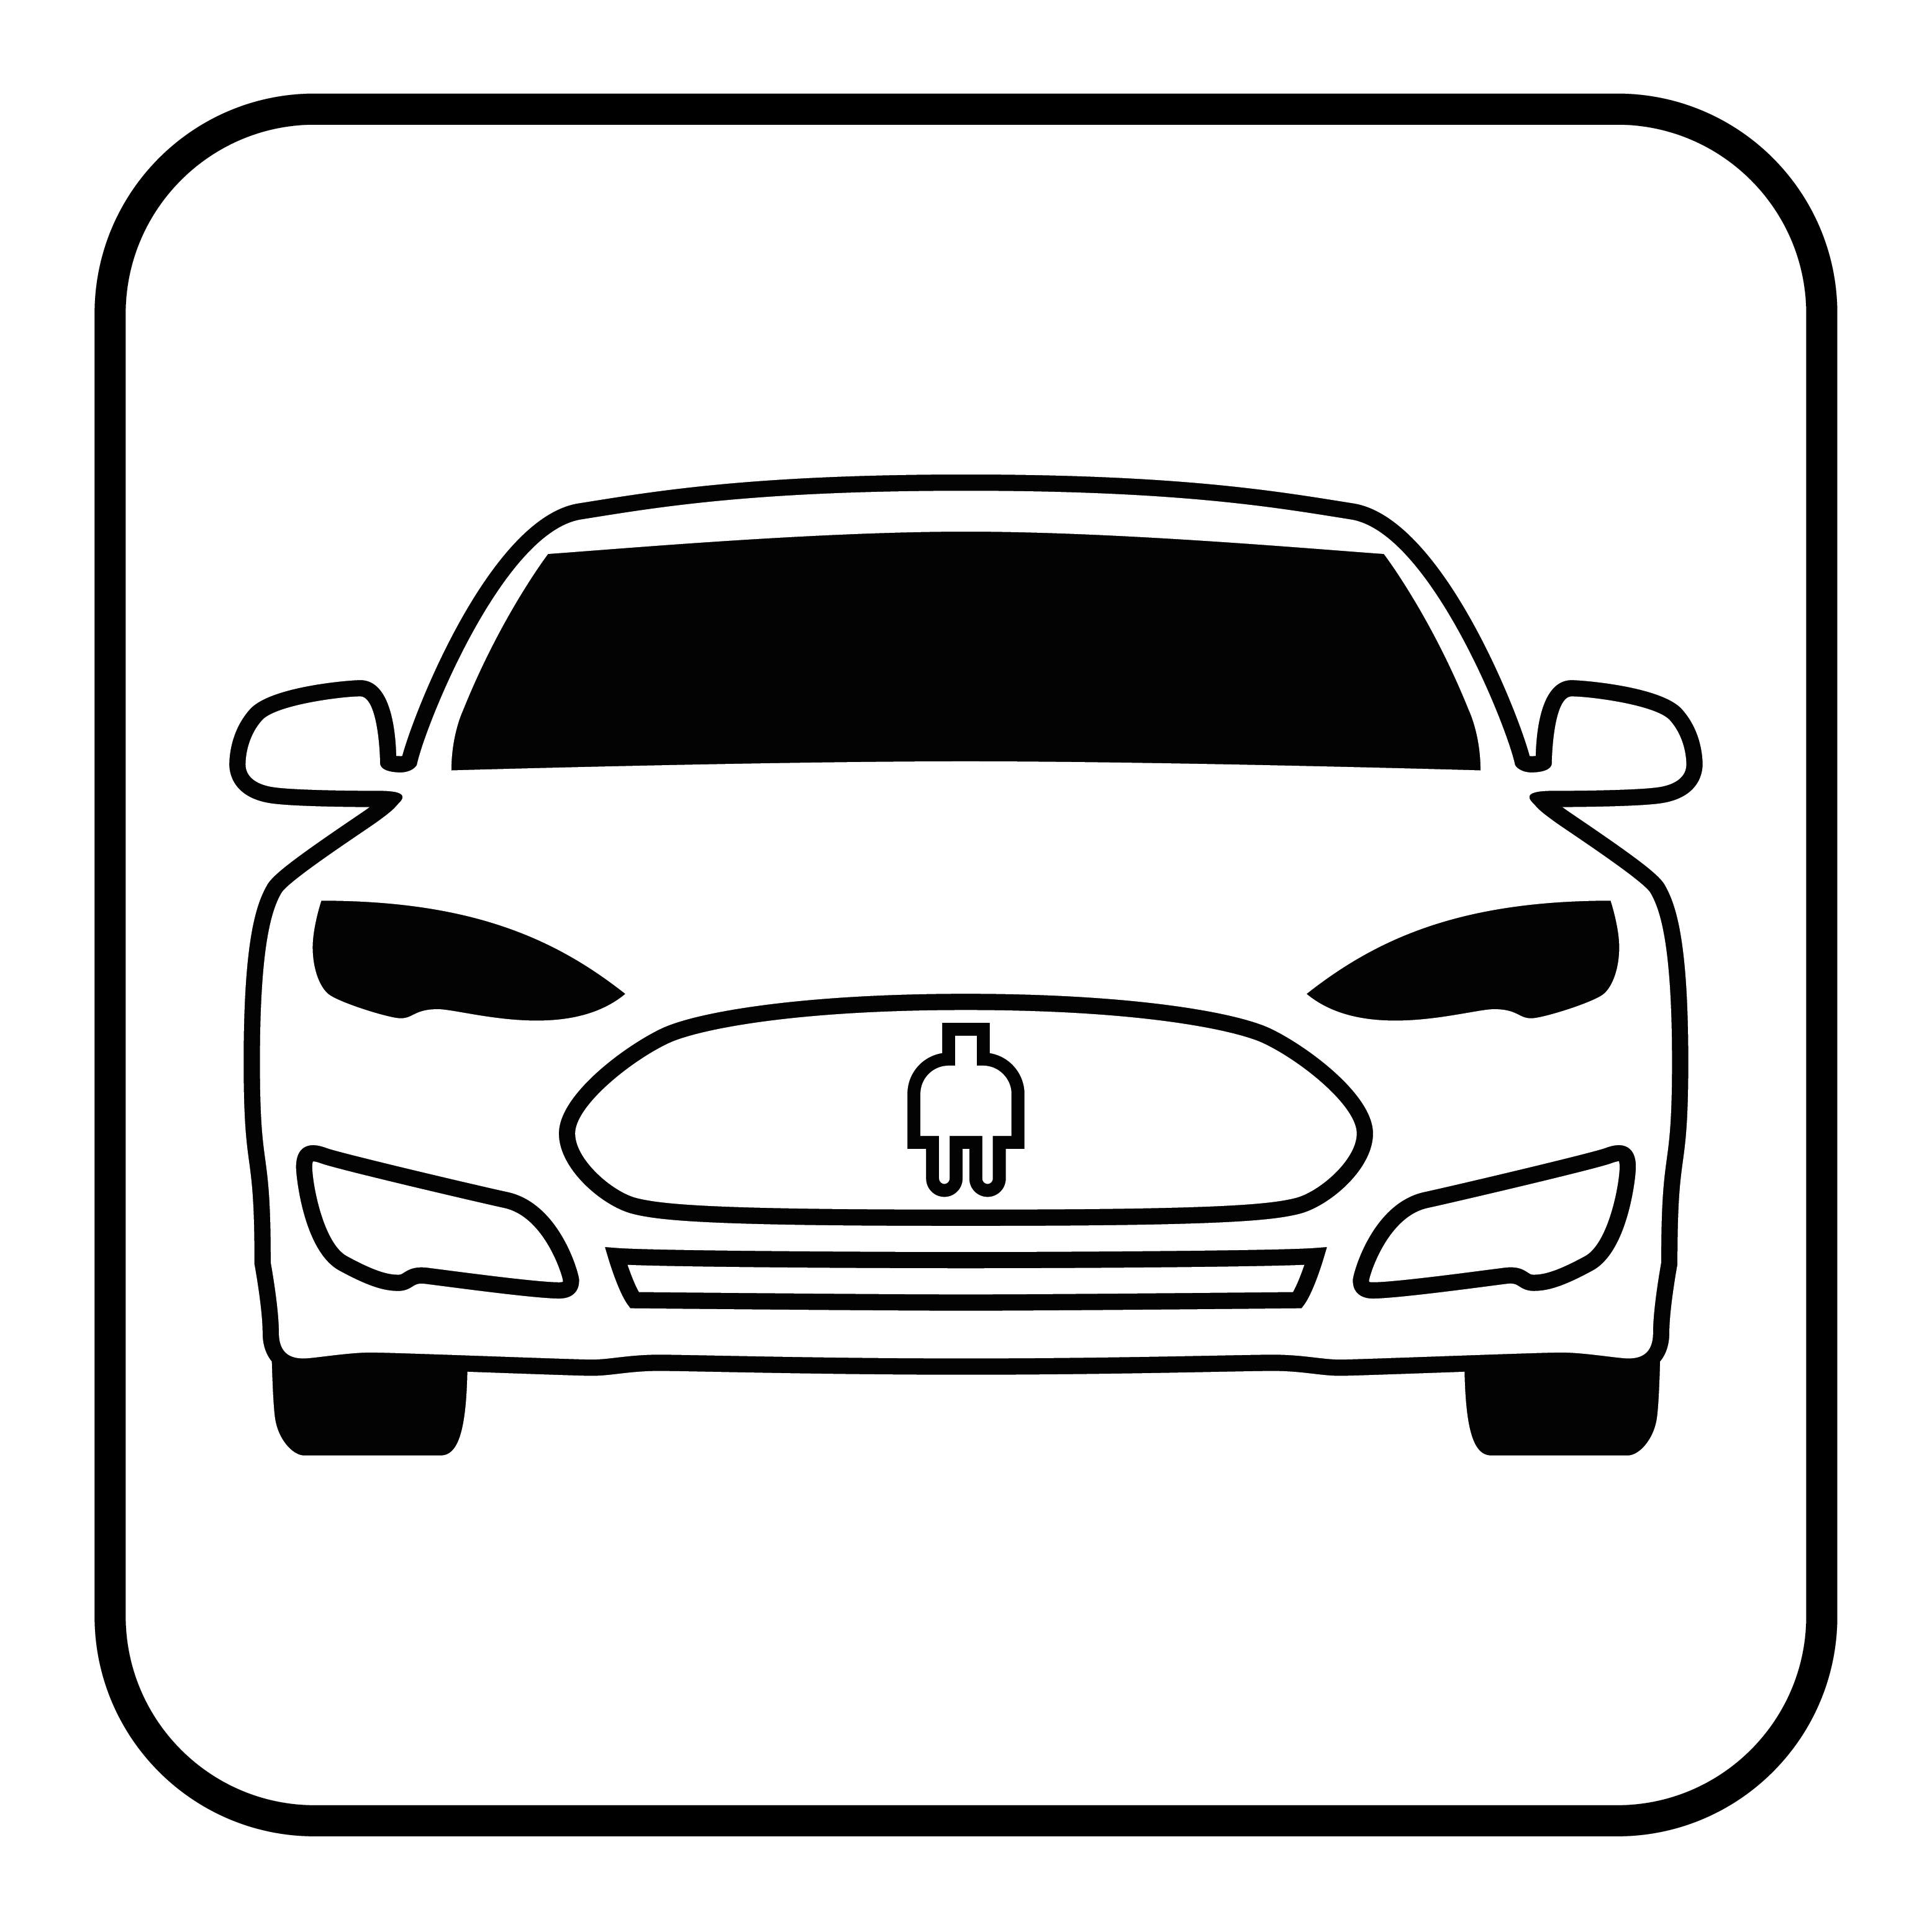 Electrical cars icon